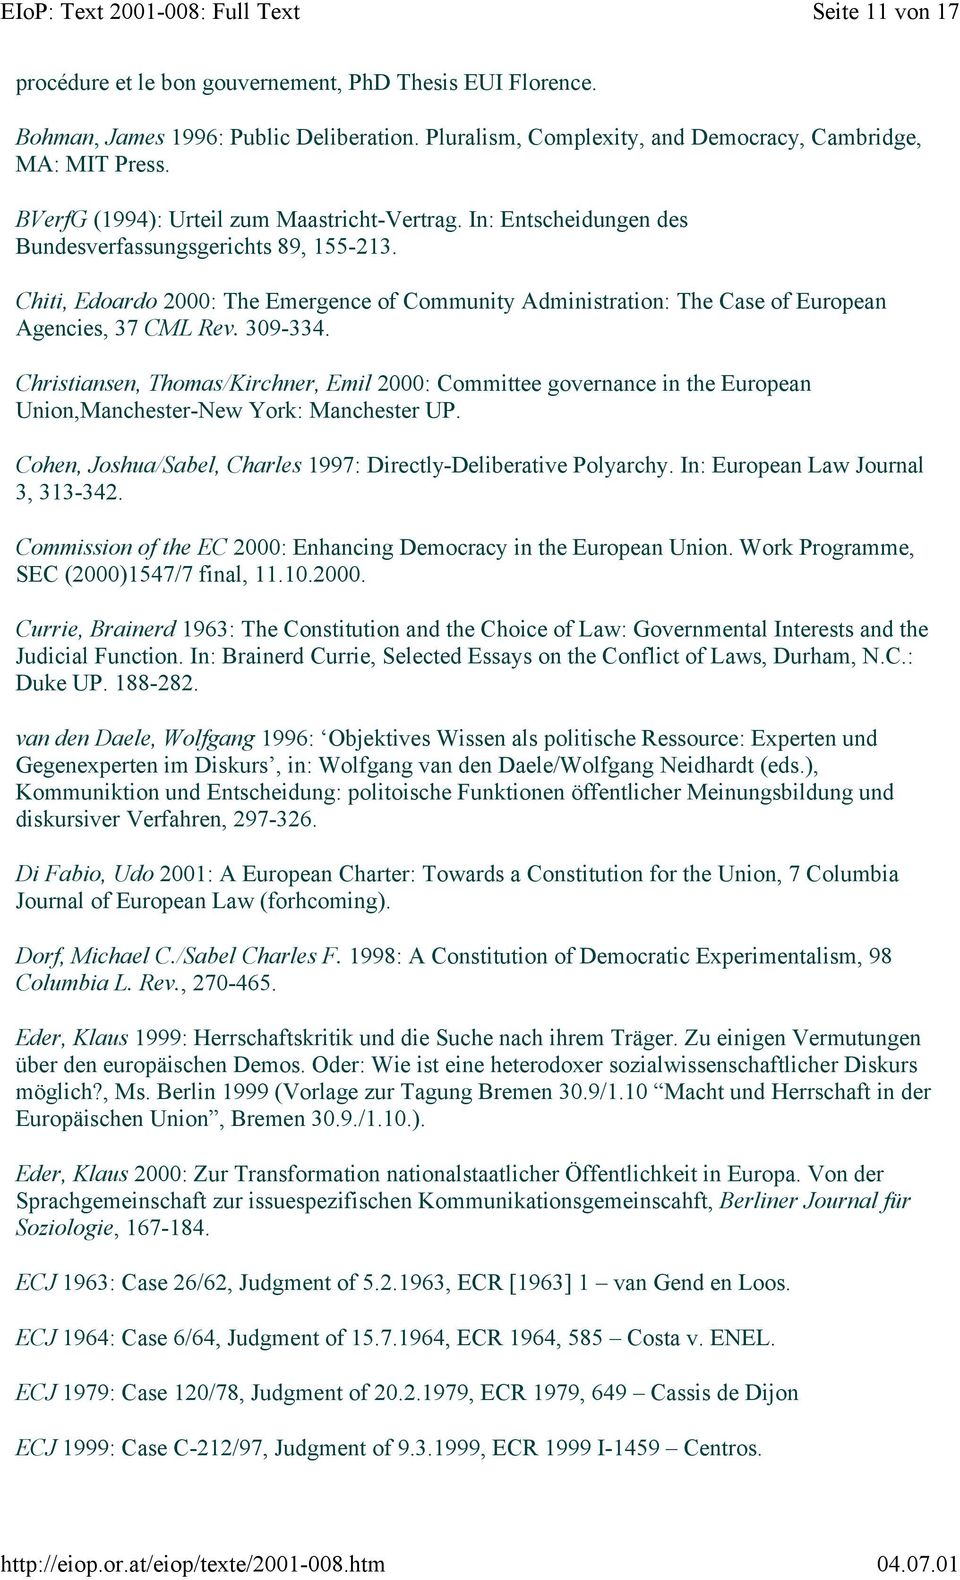 Chiti, Edoardo 2000: The Emergence of Community Administration: The Case of European Agencies, 37 CML Rev. 309-334.